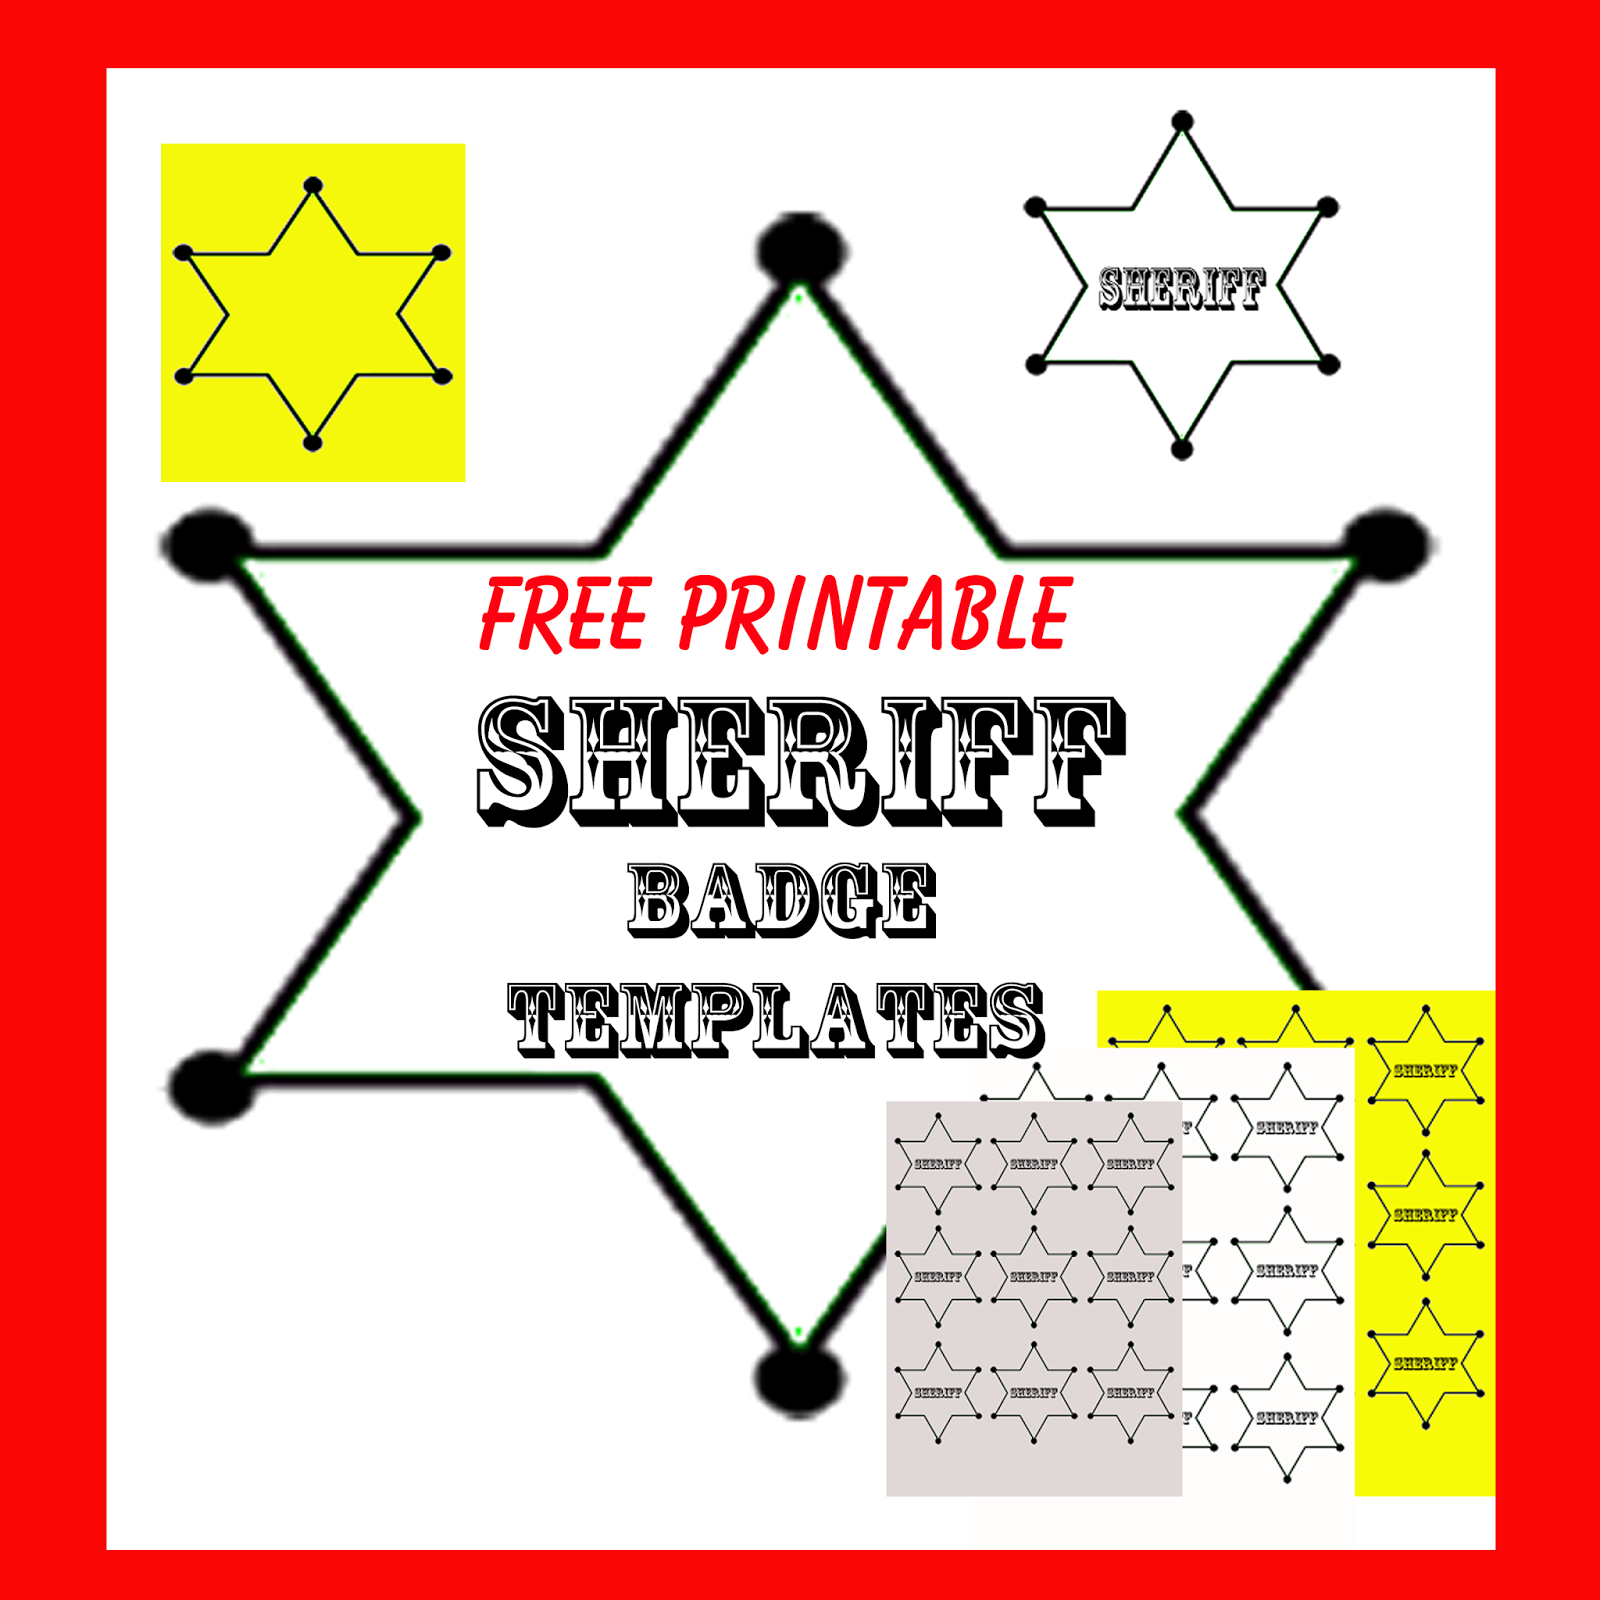 Punchy image with printable sheriff badge